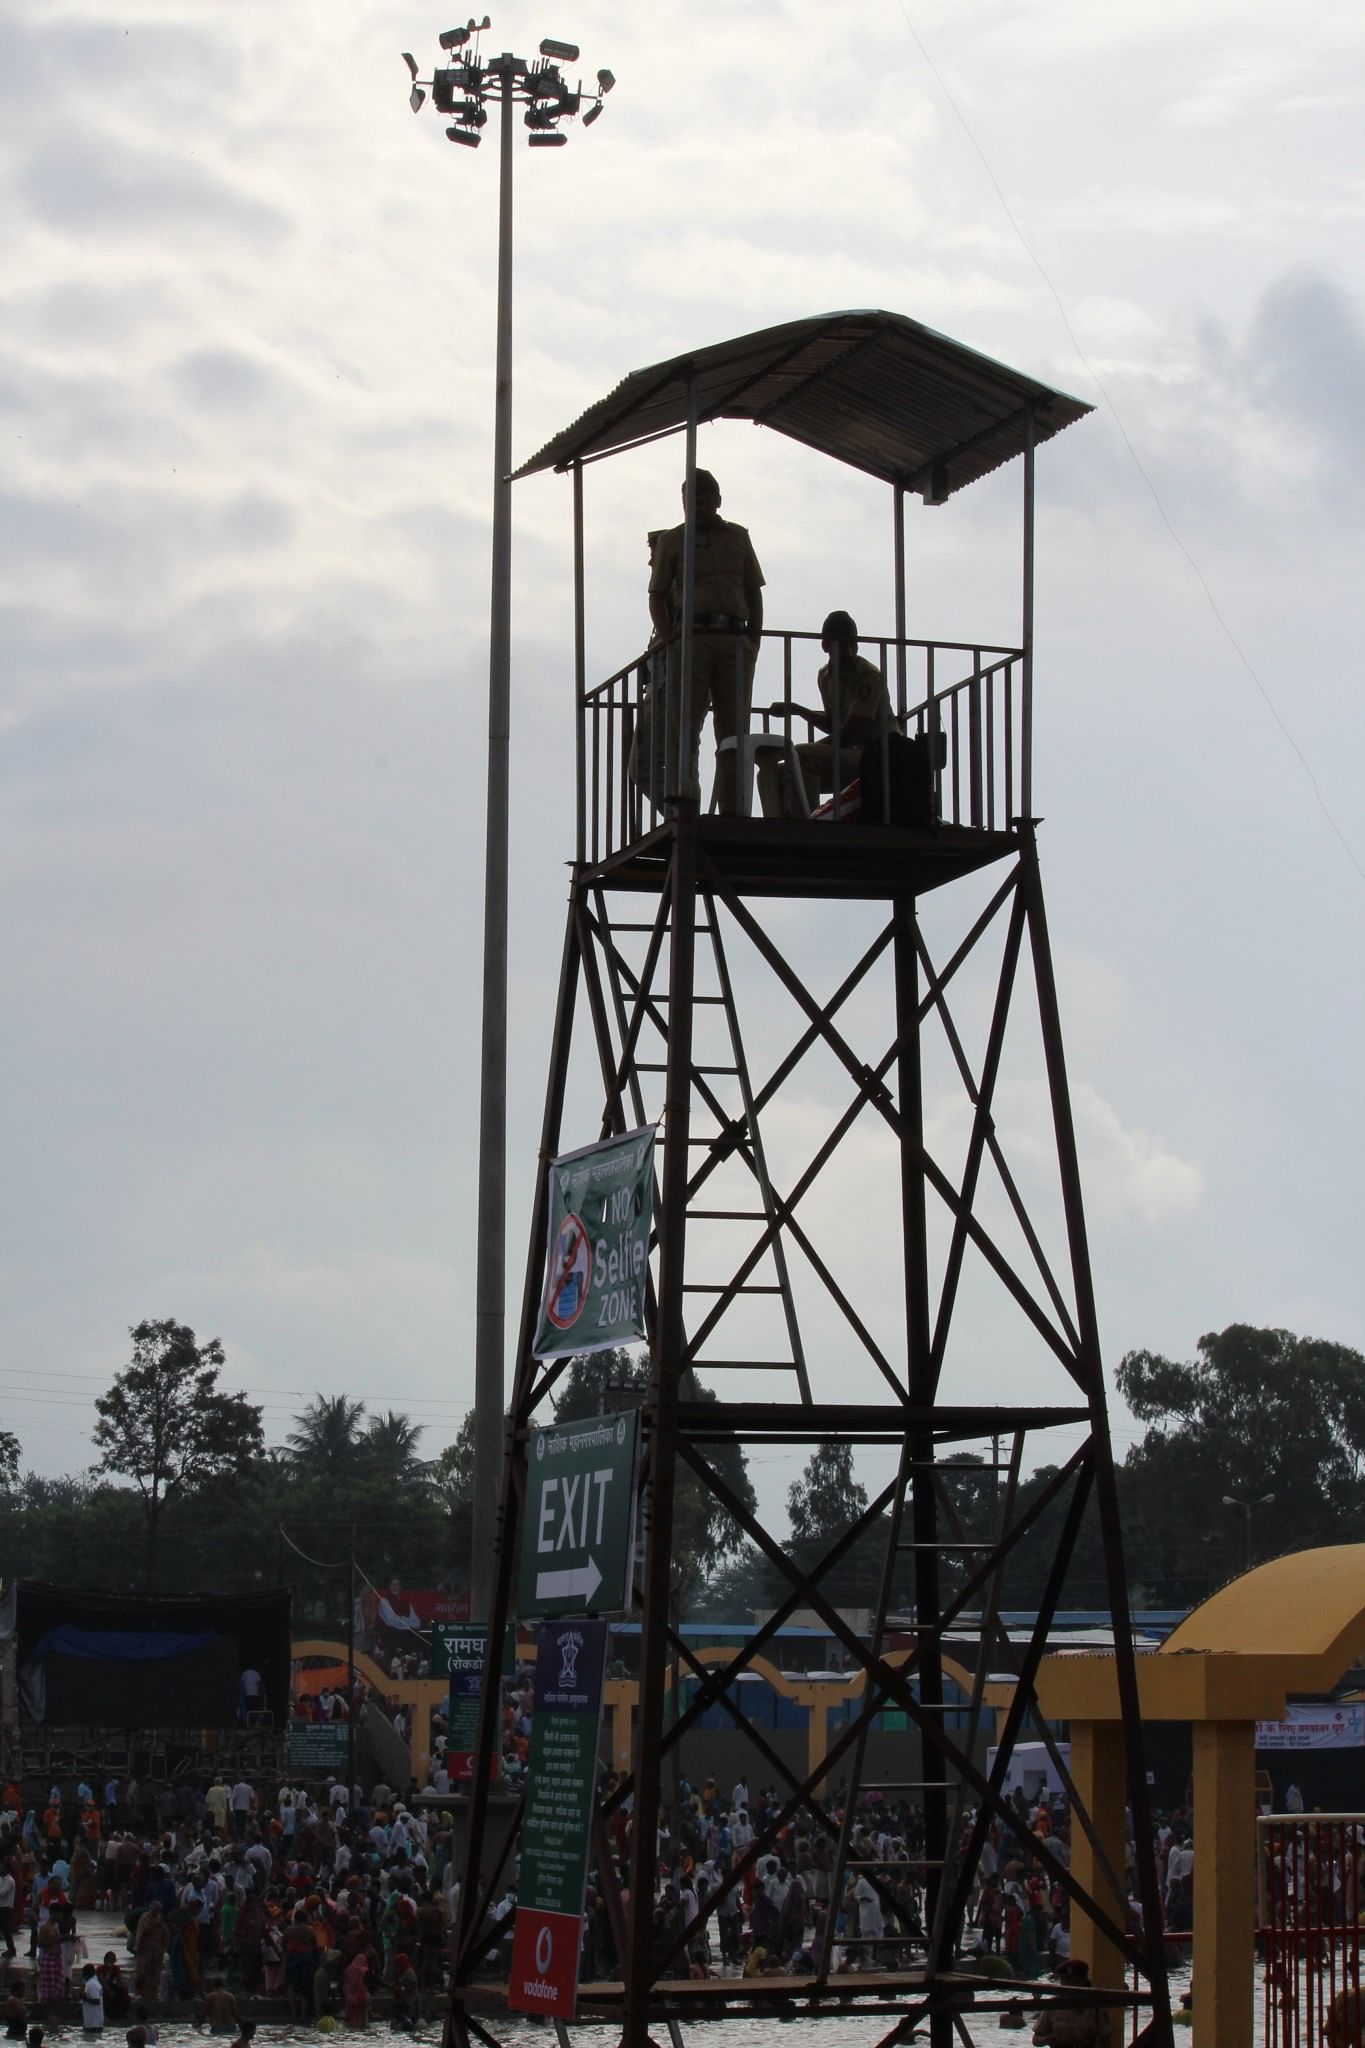 Policemen located on the watch tower for crowd management